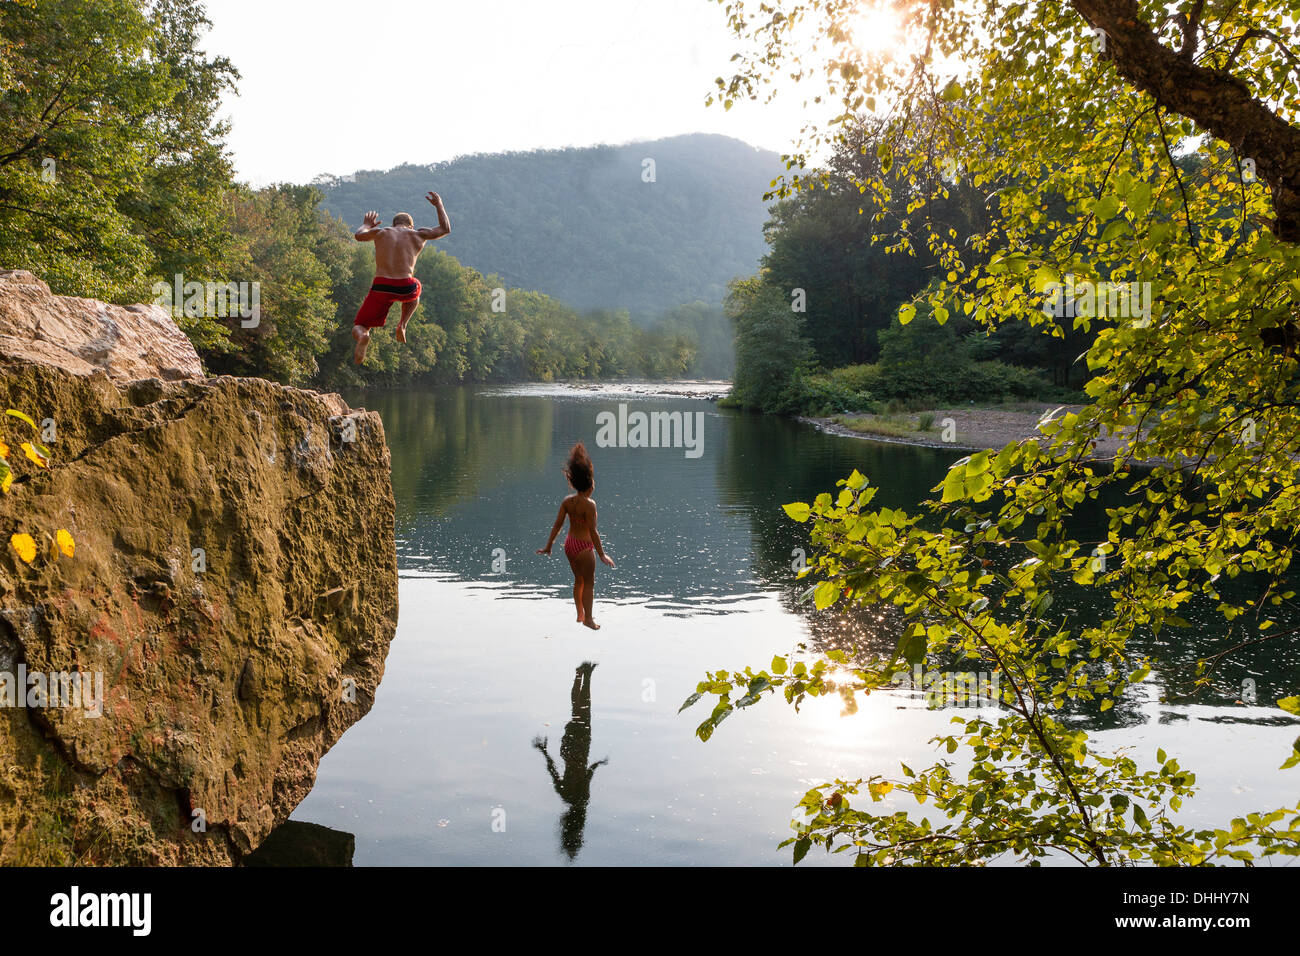 Young couple jumping from rock ledge, Hamburg, Pennsylvania, USA - Stock Image